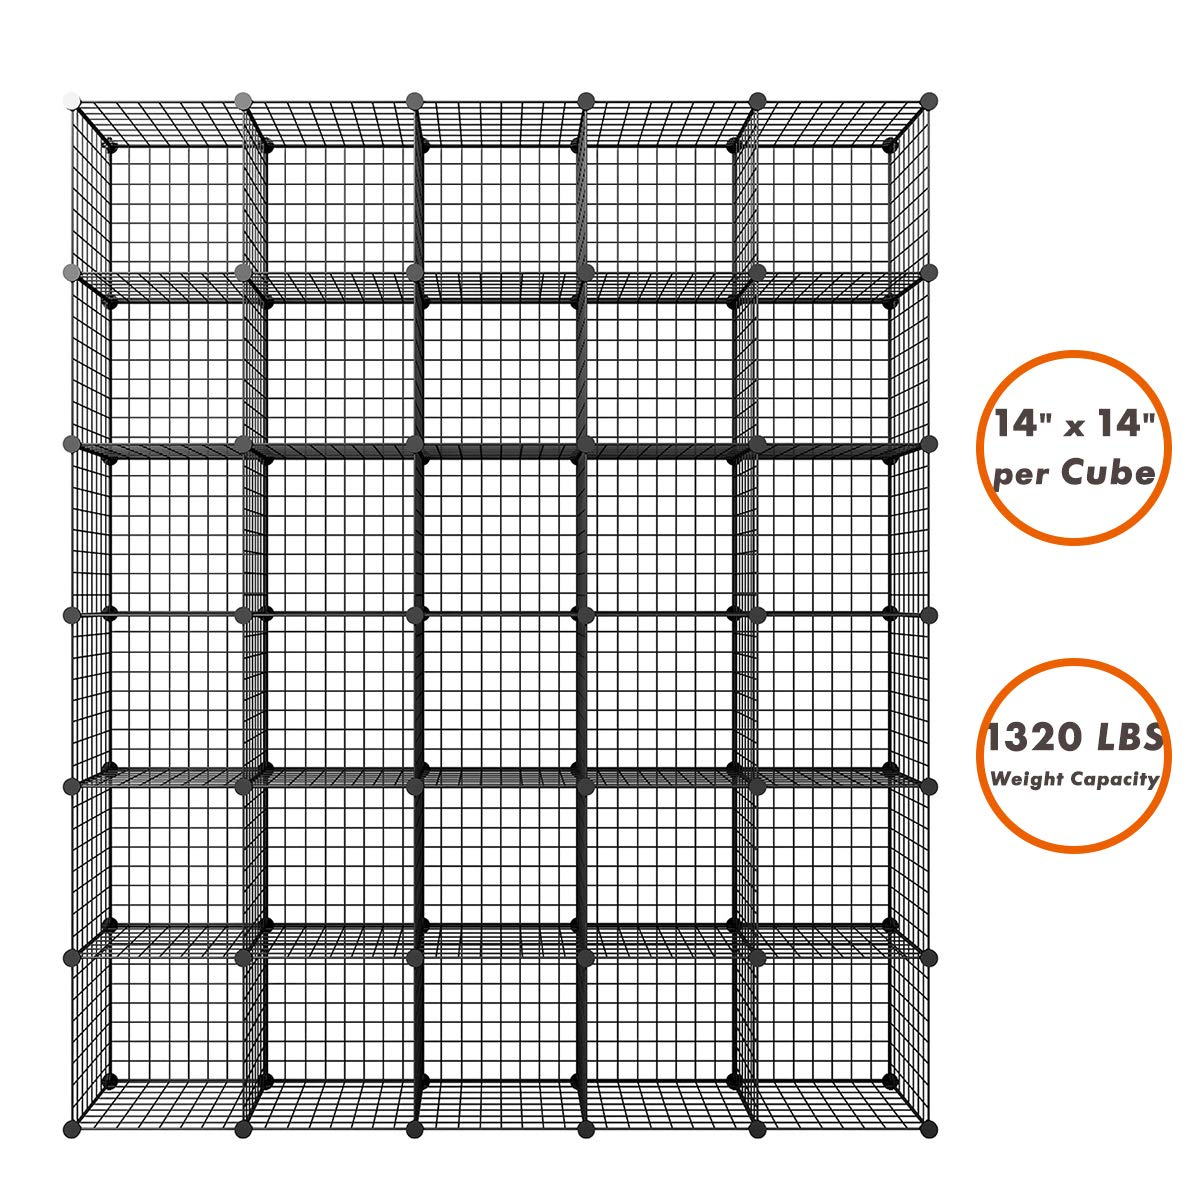 KOUSI Large 14''x14'' Storage Cubes Wire Grid Modular Metal Cubbies Organizer Bookcases and Book Shelves Origami Multifunction Shelving Unit, Capacious Customizable supports up to 44 lbs,Black, 30 Cubes by KOUSI